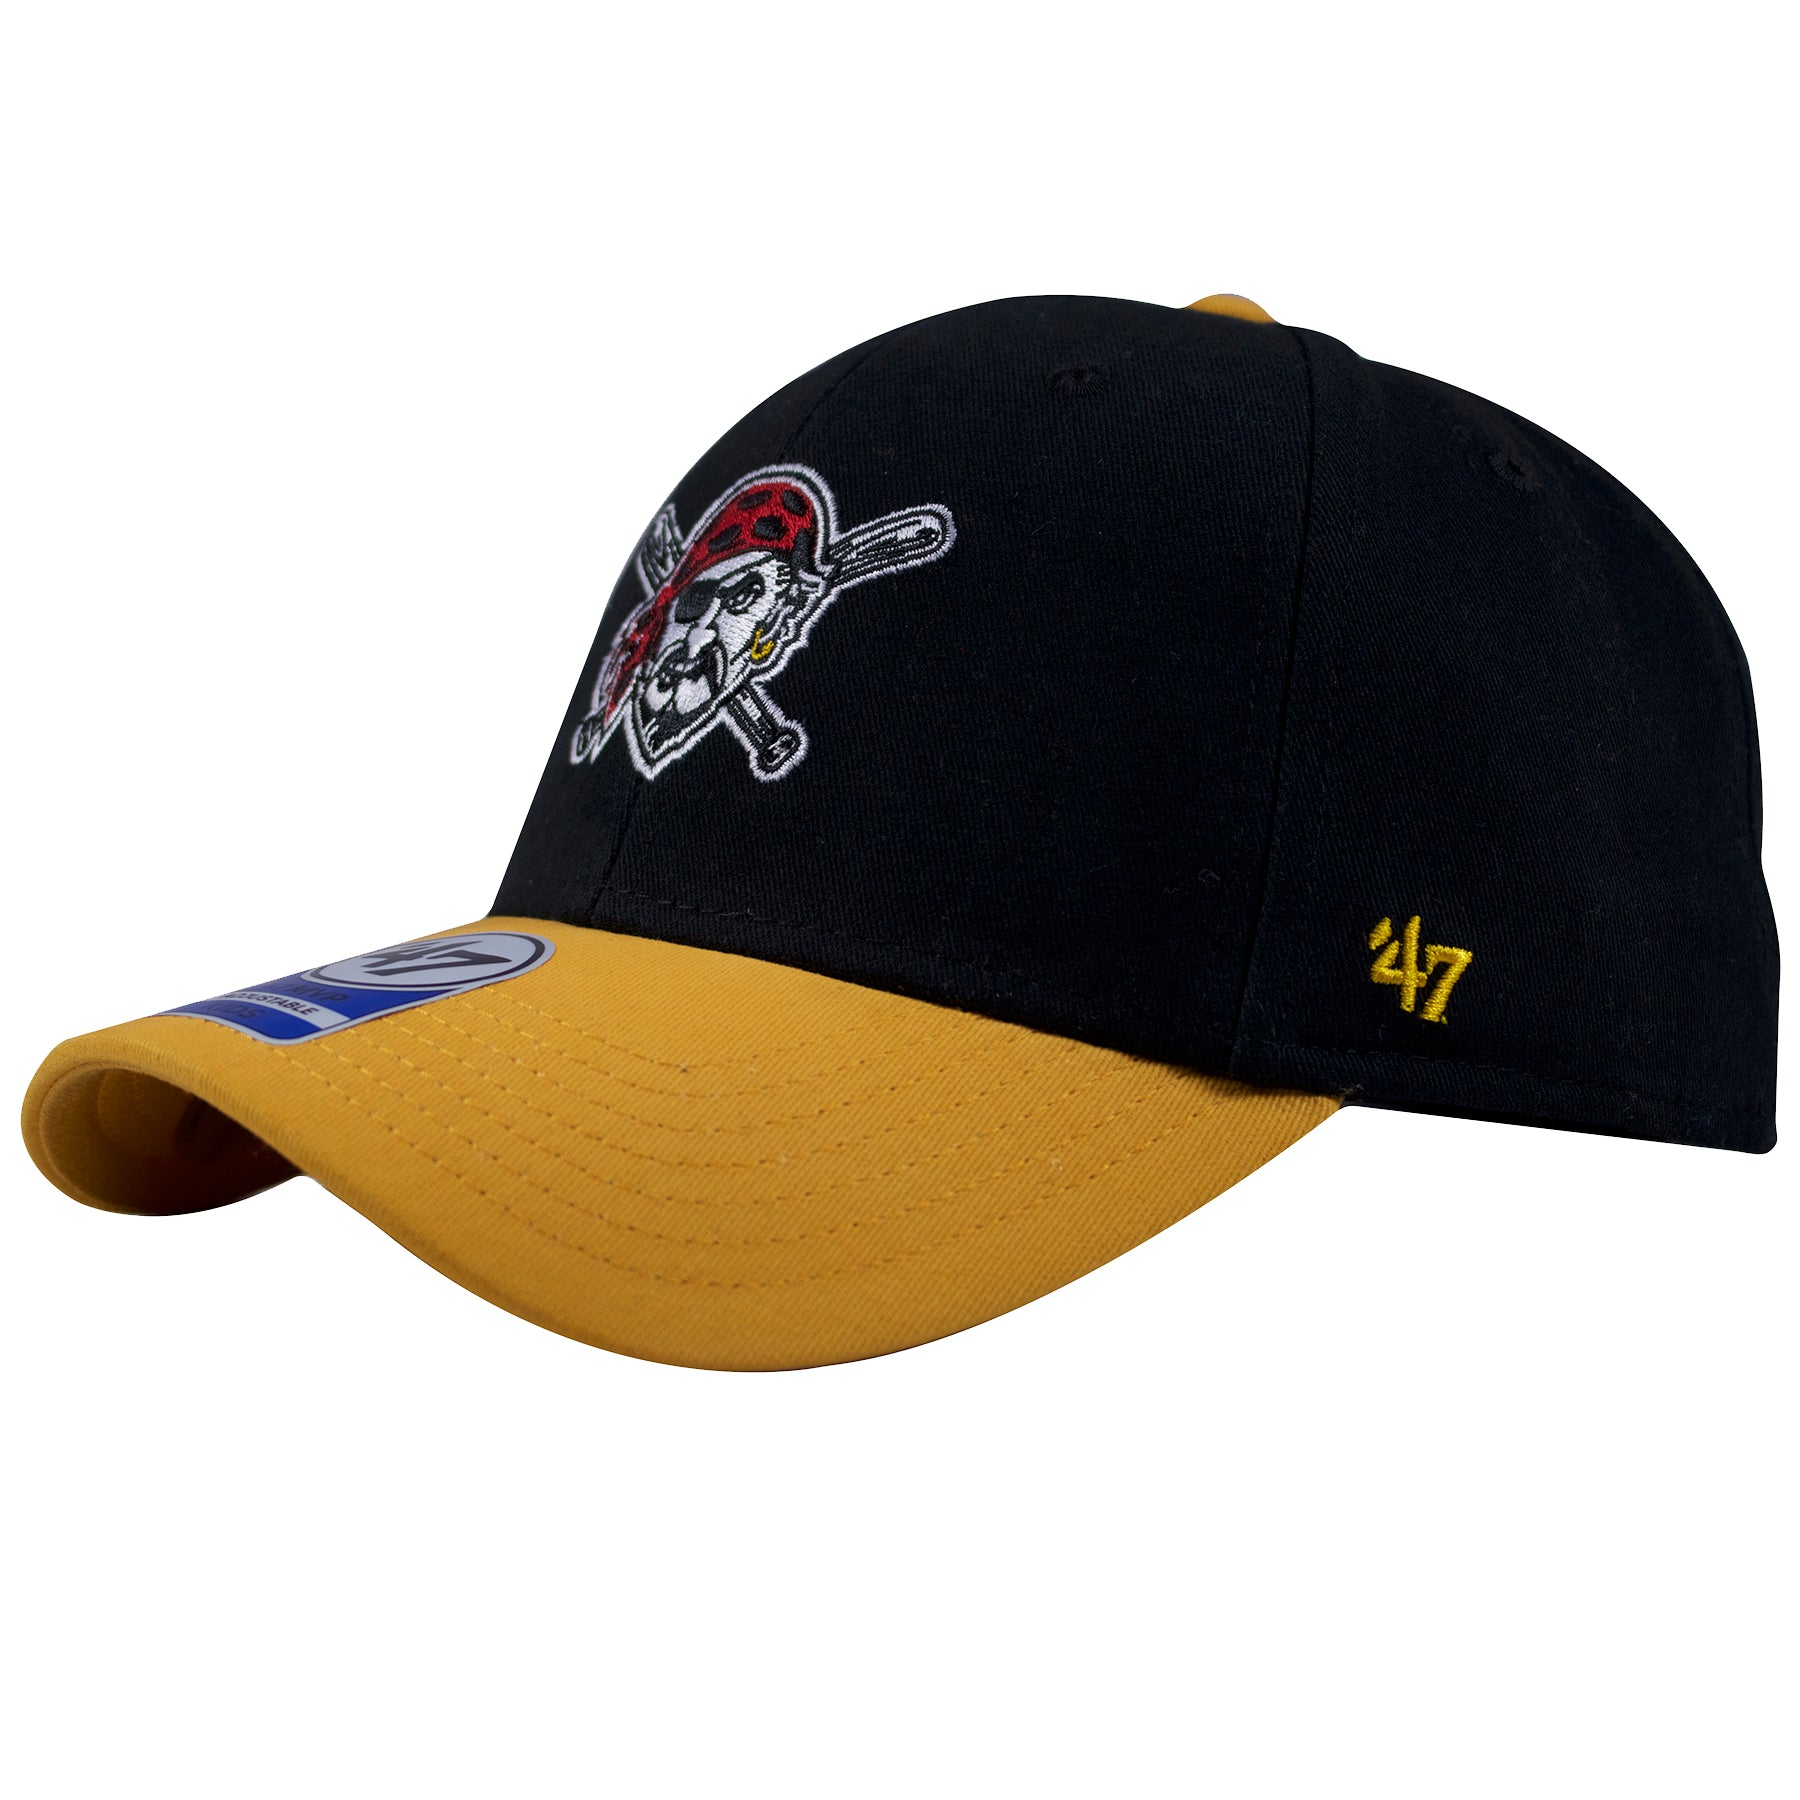 acc167ecdc4 ... baseball cap black 30986 cc371  coupon for on the left side of the  pittsburgh pirates bent brim youth dad hat is